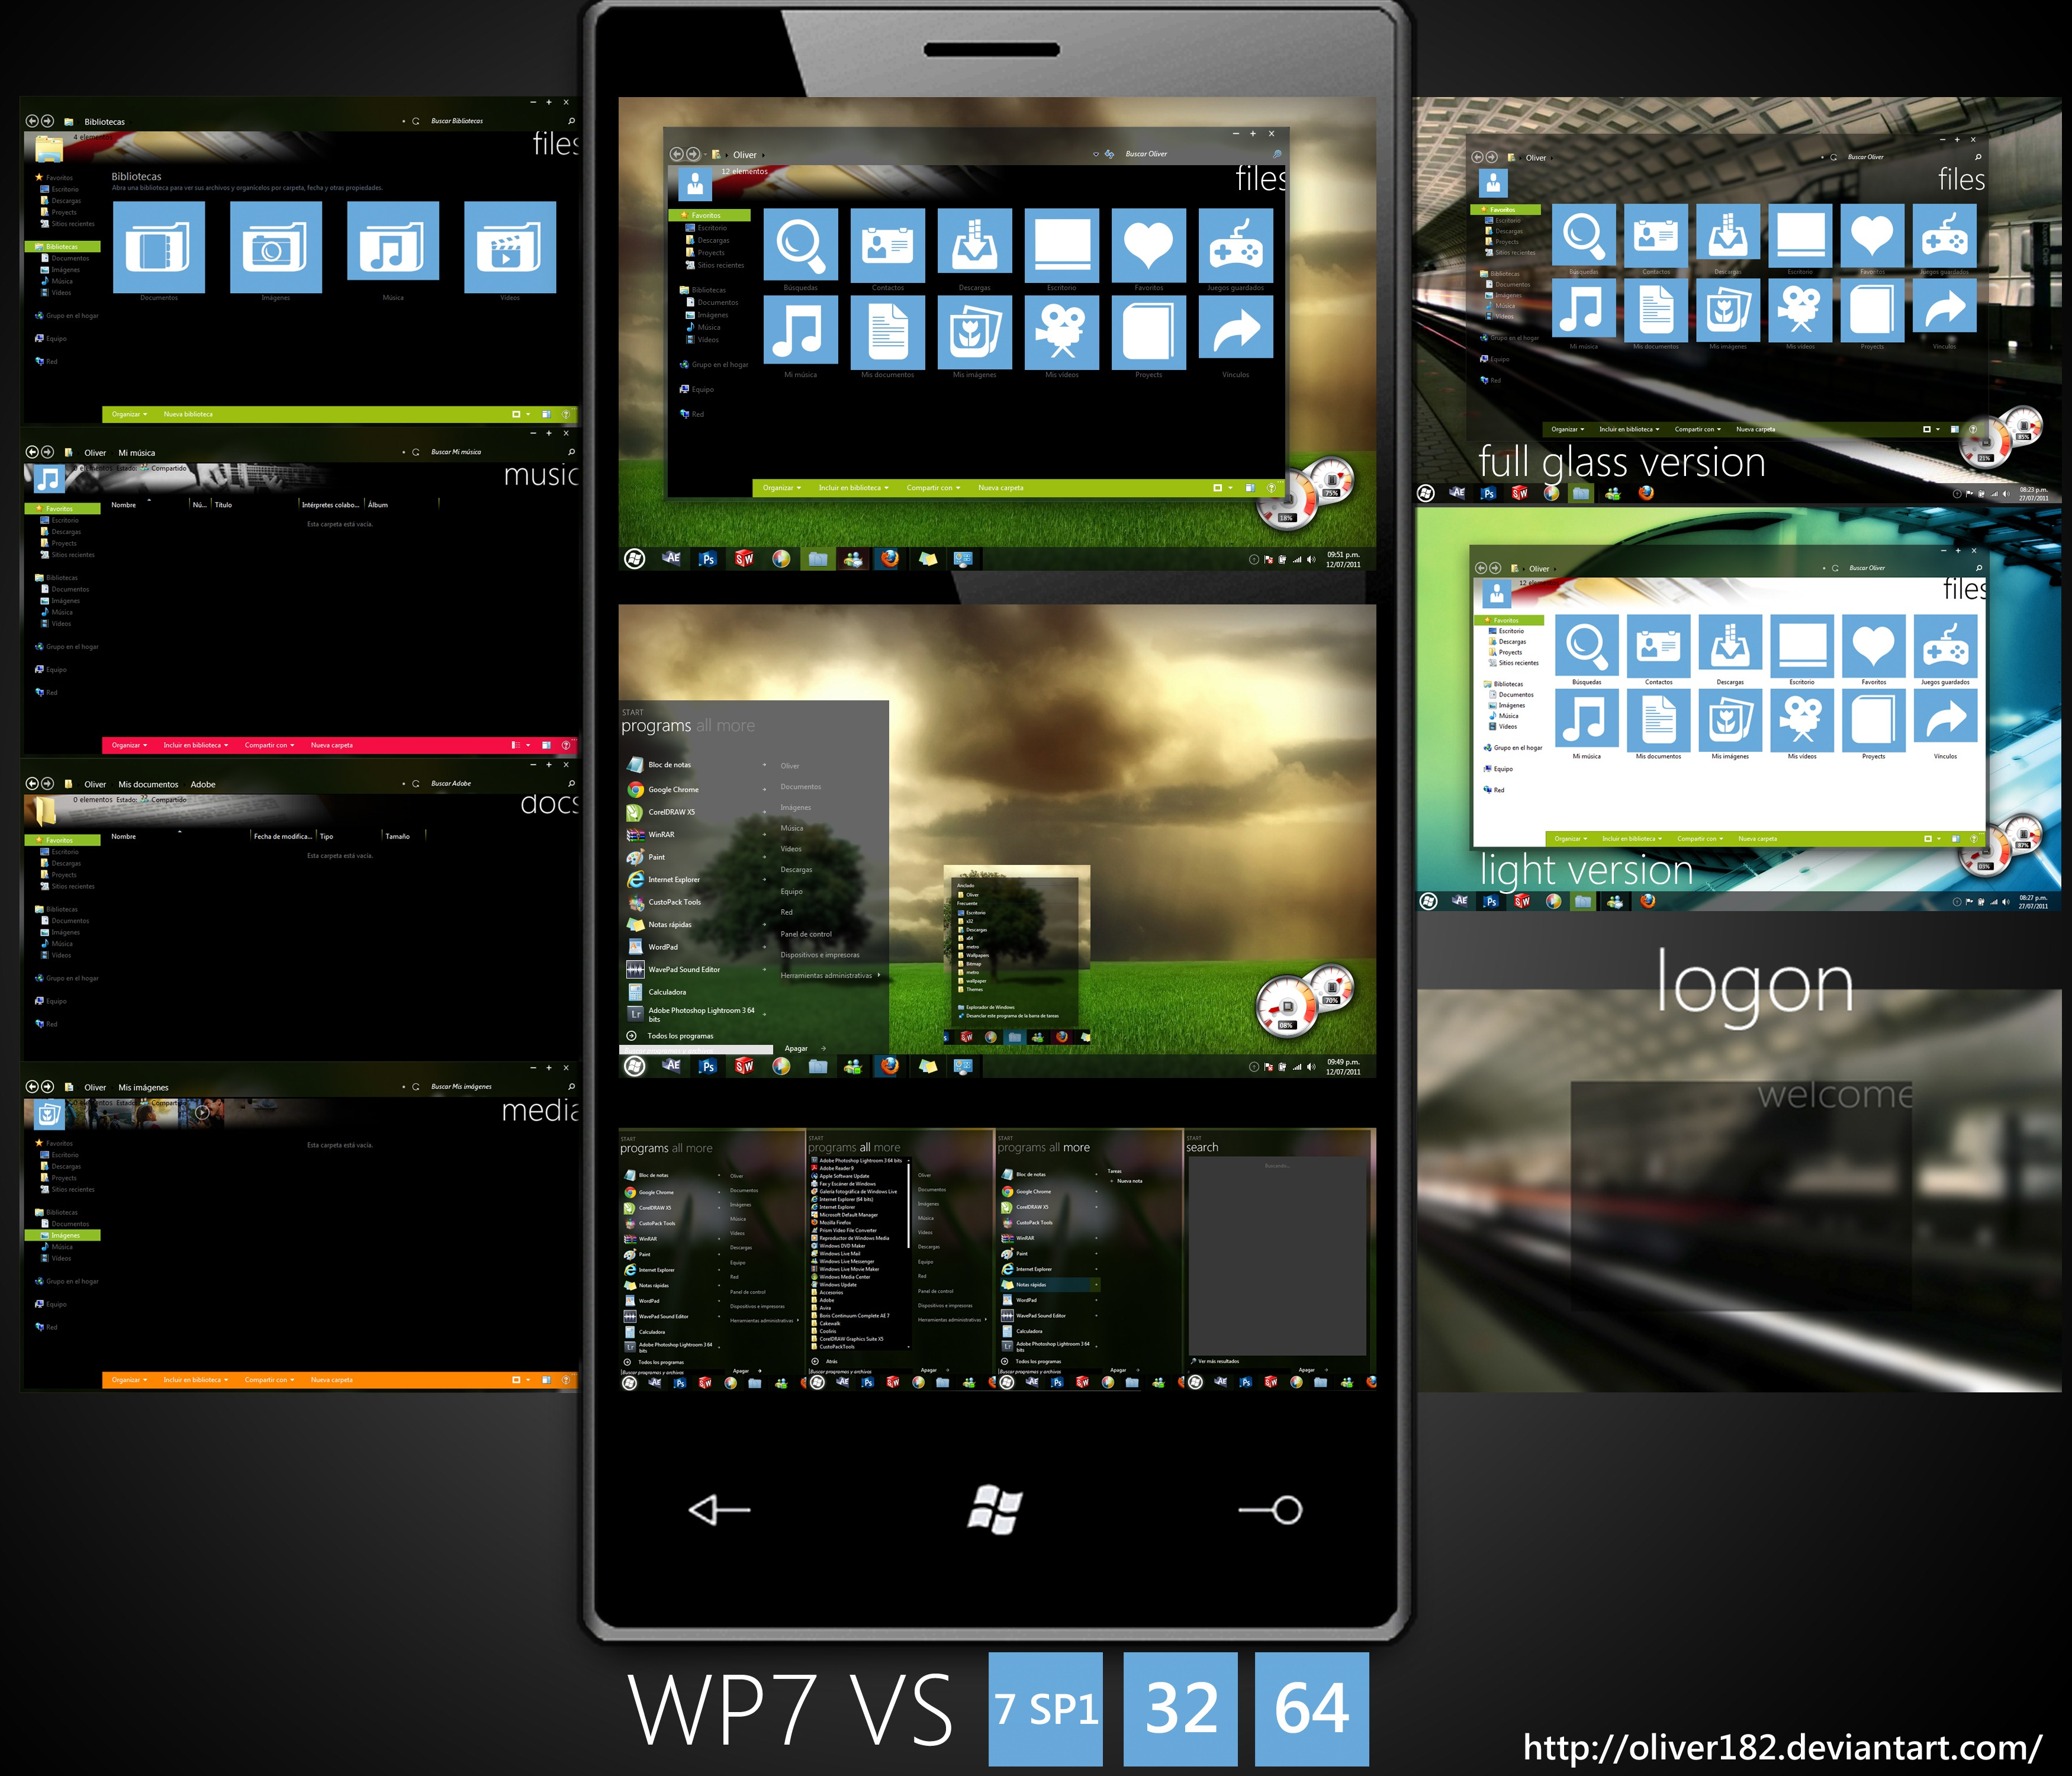 Baixar Windows Phone Mango Amp Xbox 7 Inspirado Tema Para